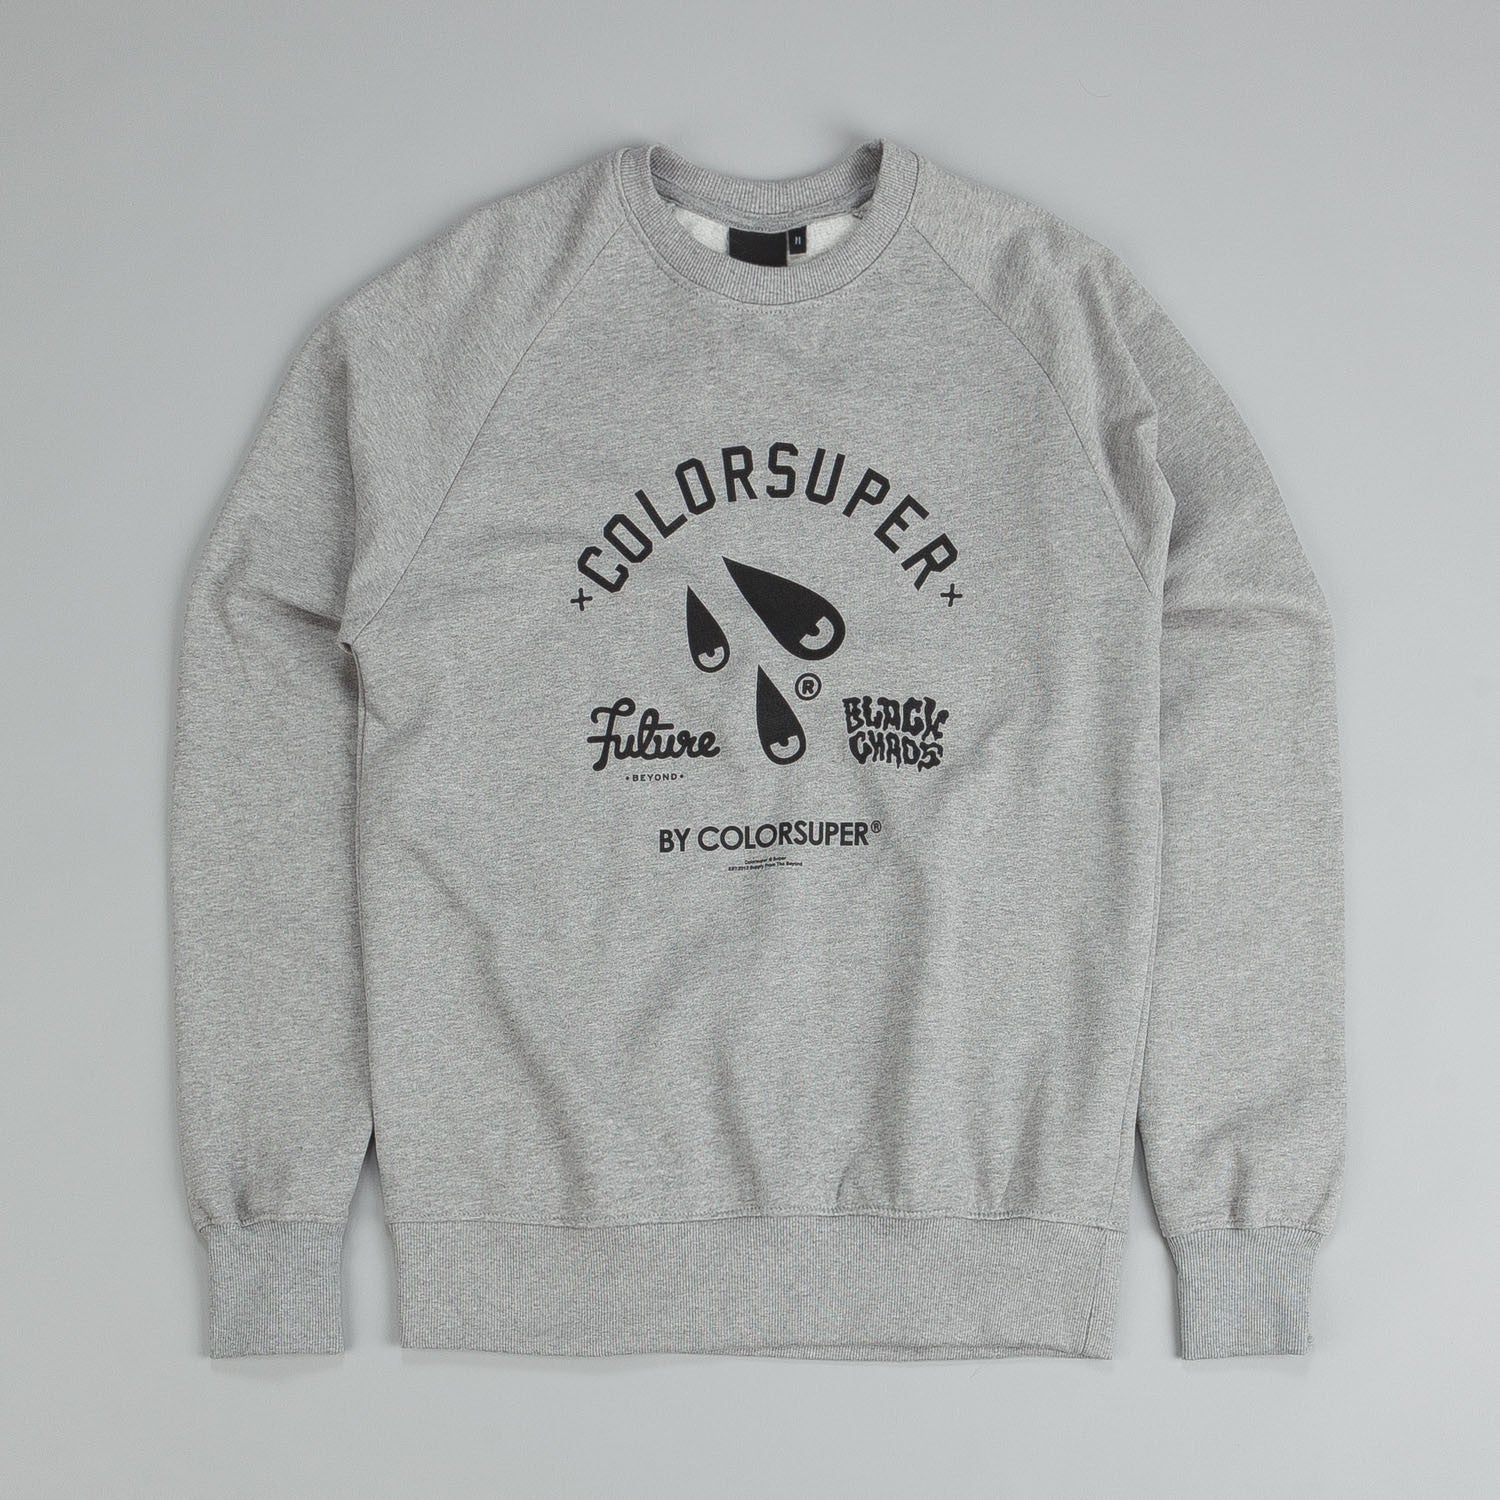 Colorsuper Sweater Grey / Black